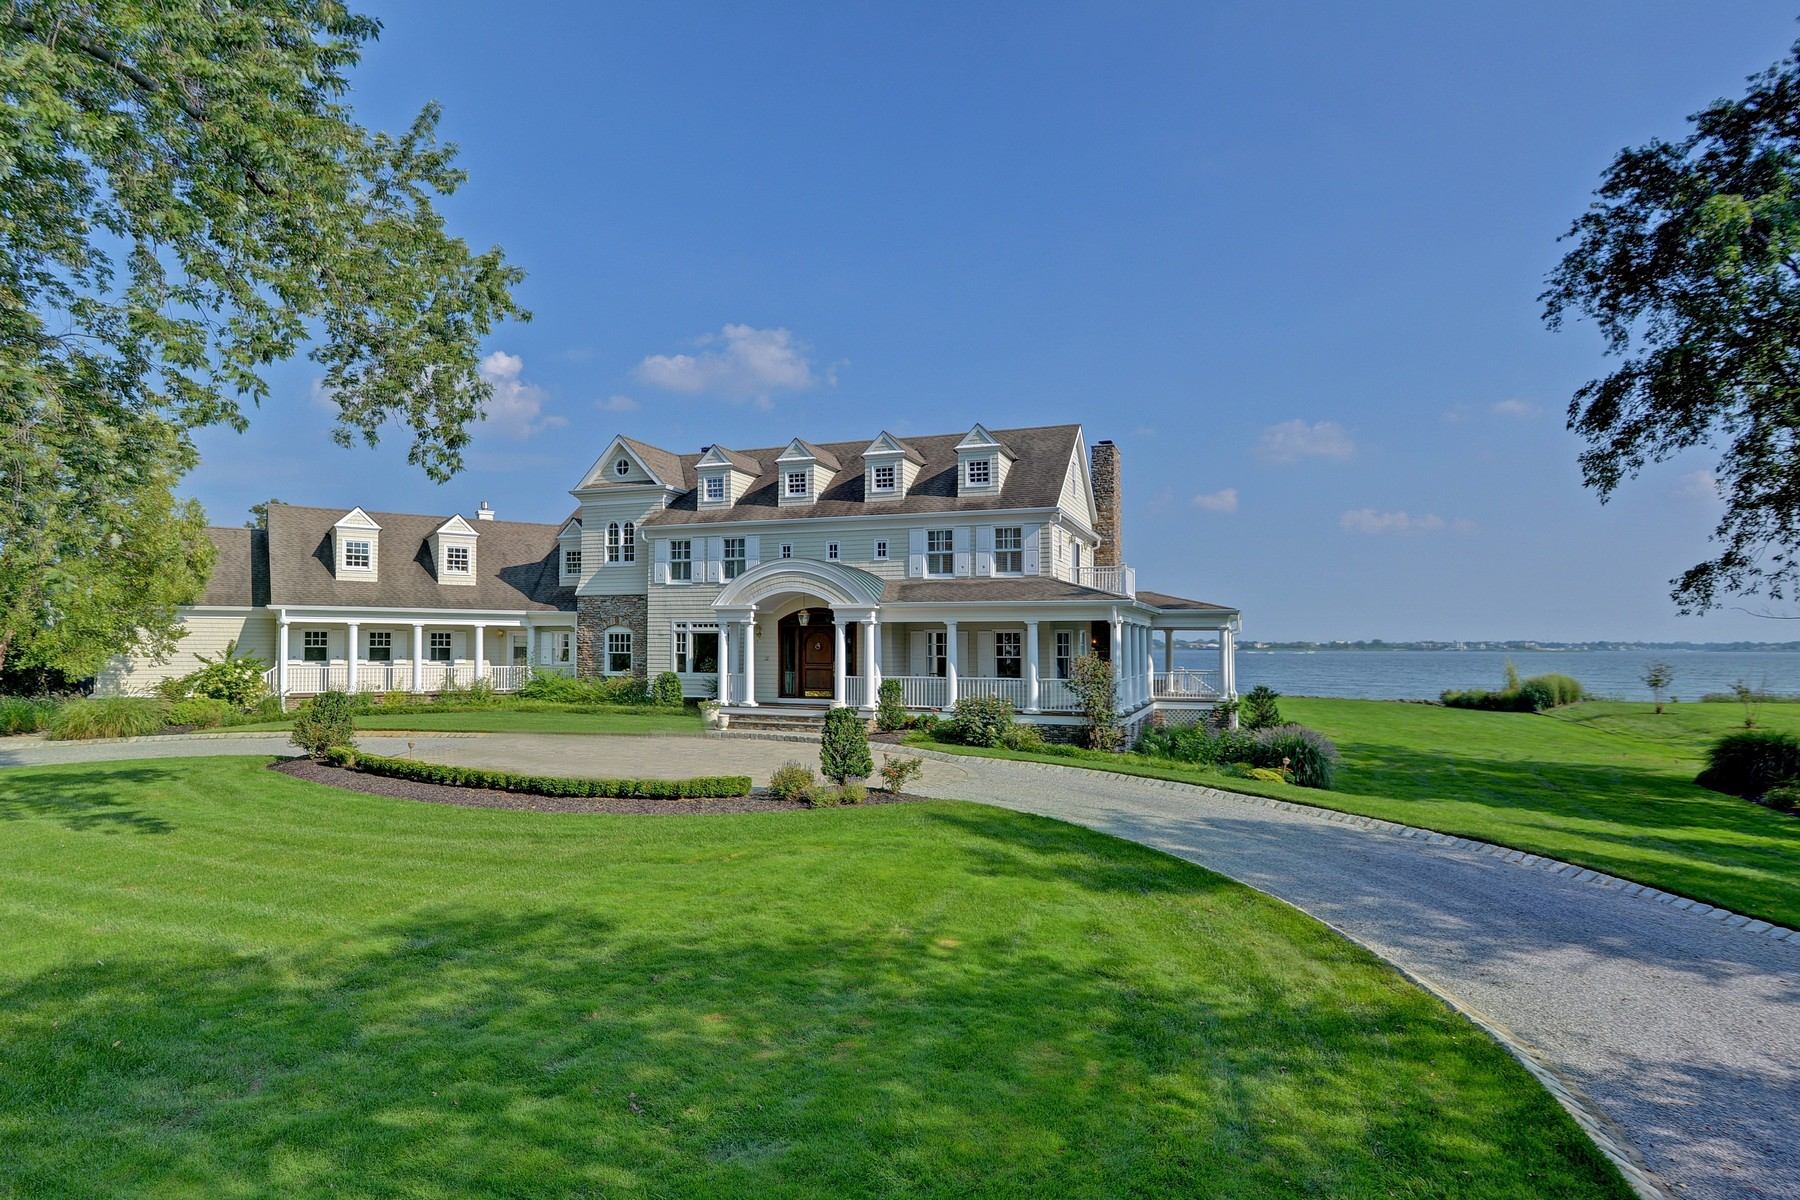 Single Family Home for Sale at Shrewsbury River Waterfront Estate 21 Heathcliff Rd., Rumson, New Jersey 07760 United States